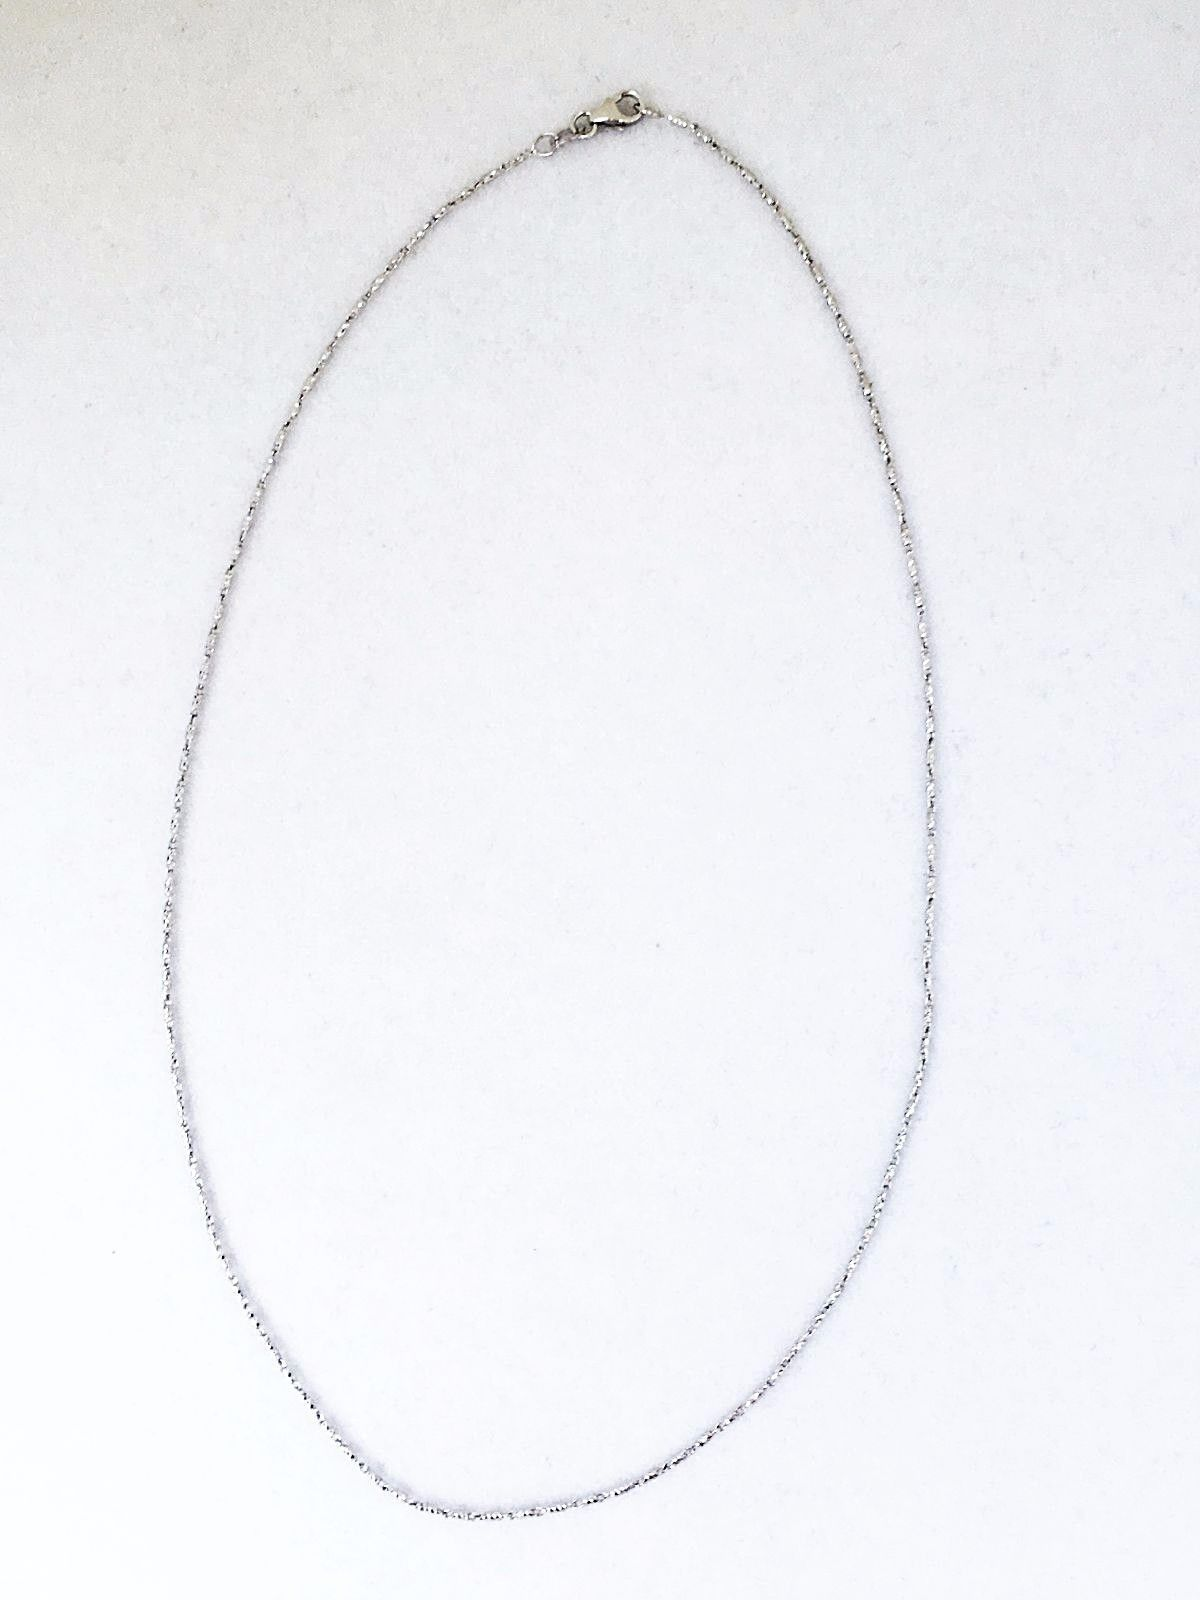 16 inch 14K white gold Raso chain, lobster clasp 3.0 grams 1.0 mm $420